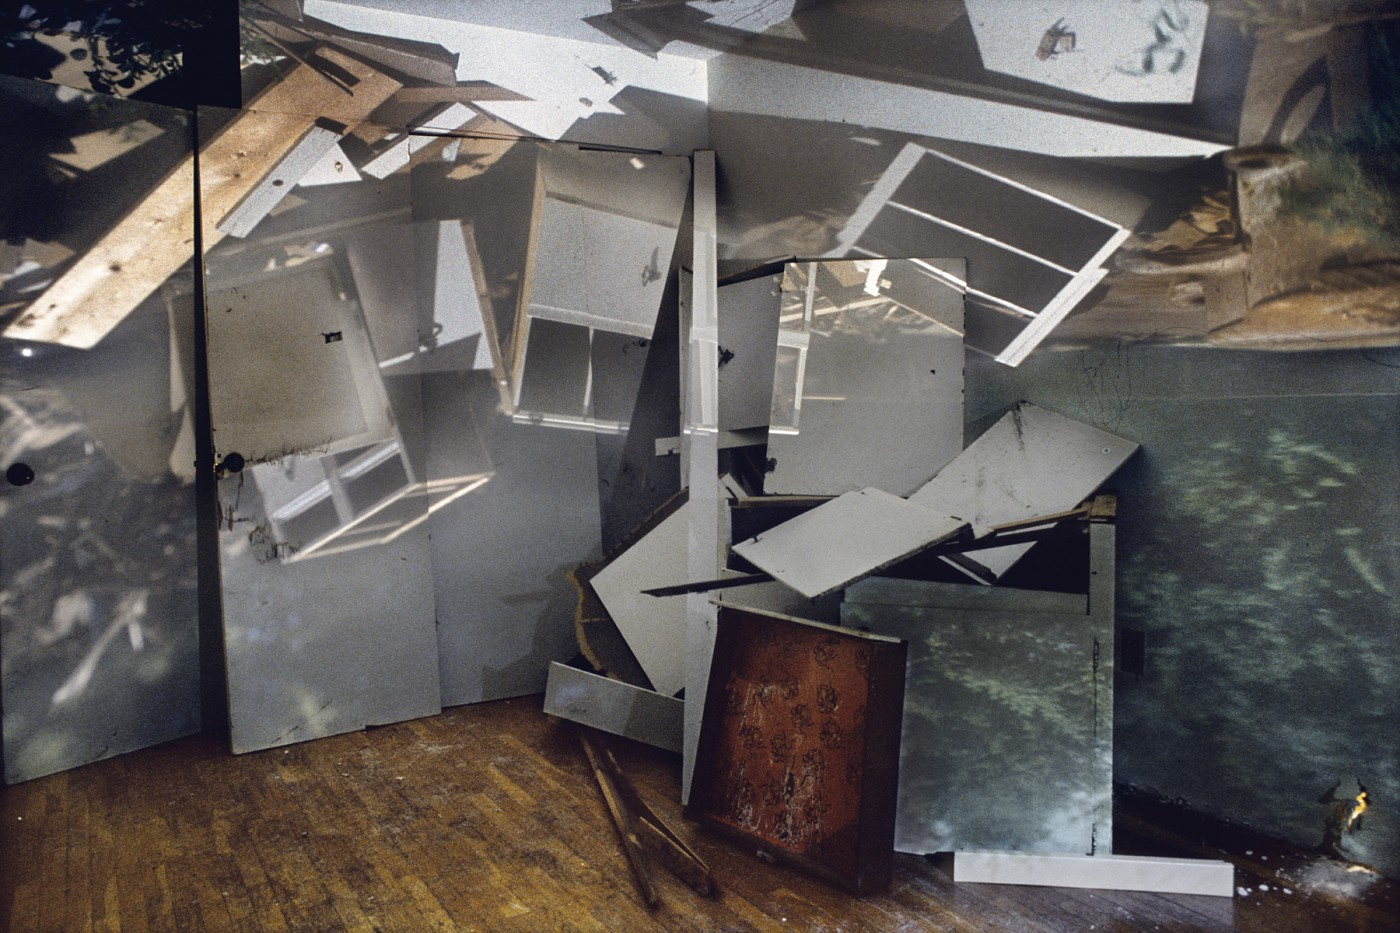 James Nizam, </span><span><em>&lt;I&gt;Pile of Cabinets in A Room&lt;/i&gt;, 2007</em>, </span><span>24 x 36